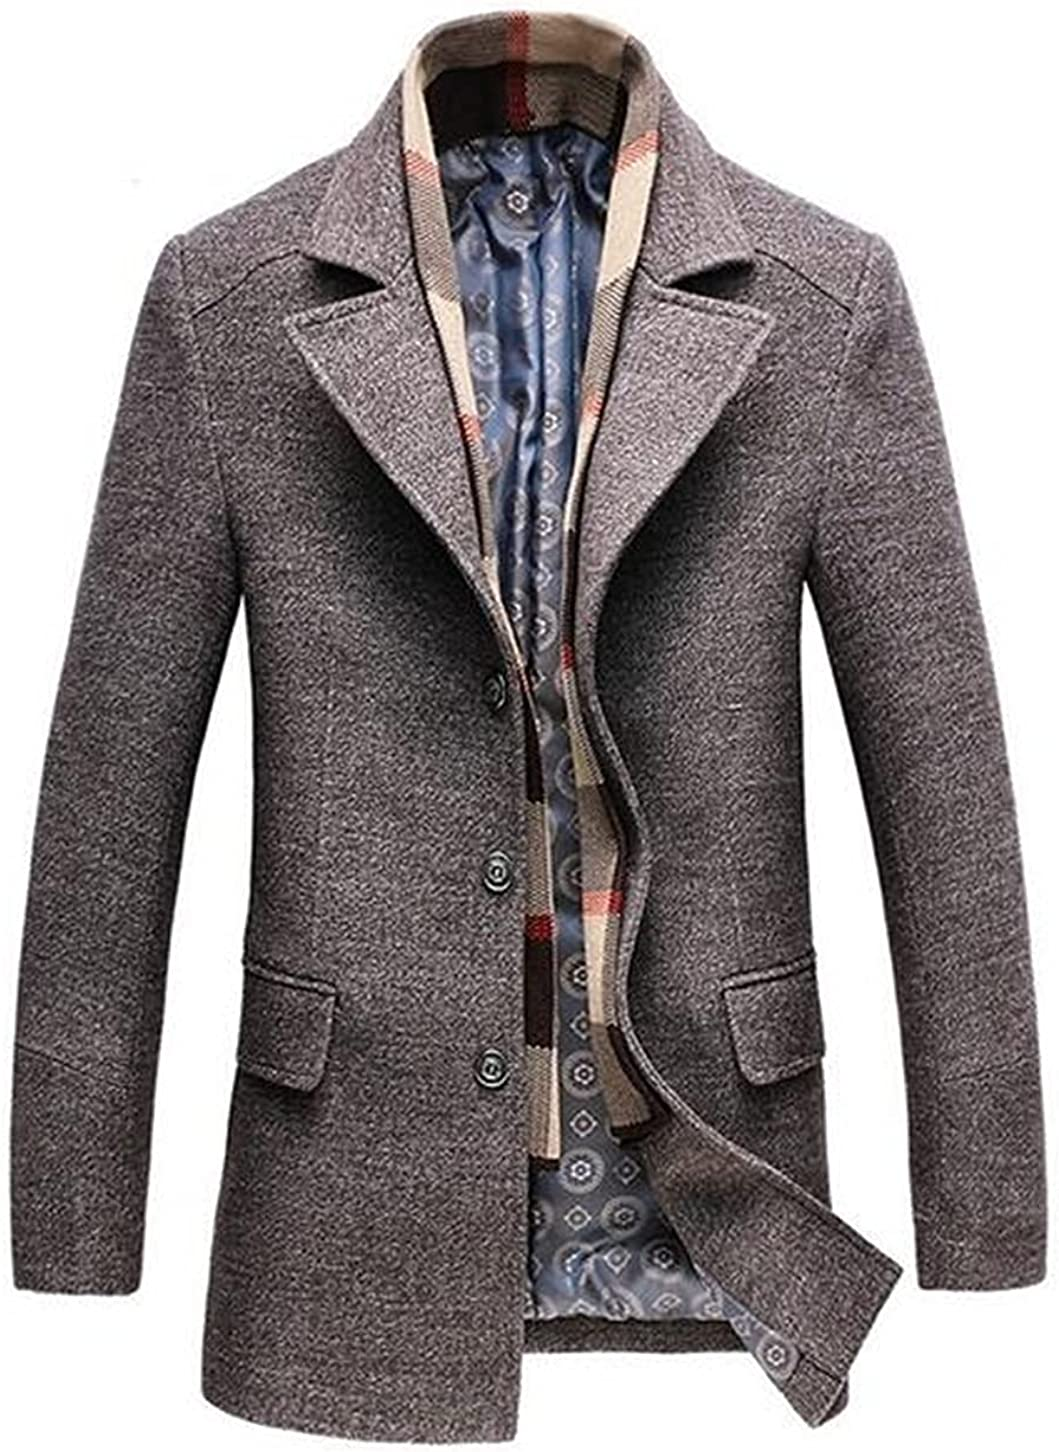 Men Wool Coats Autumn Winter Casual Thick Warm Jackets Single Button Outwear Mens Jackets And Coats